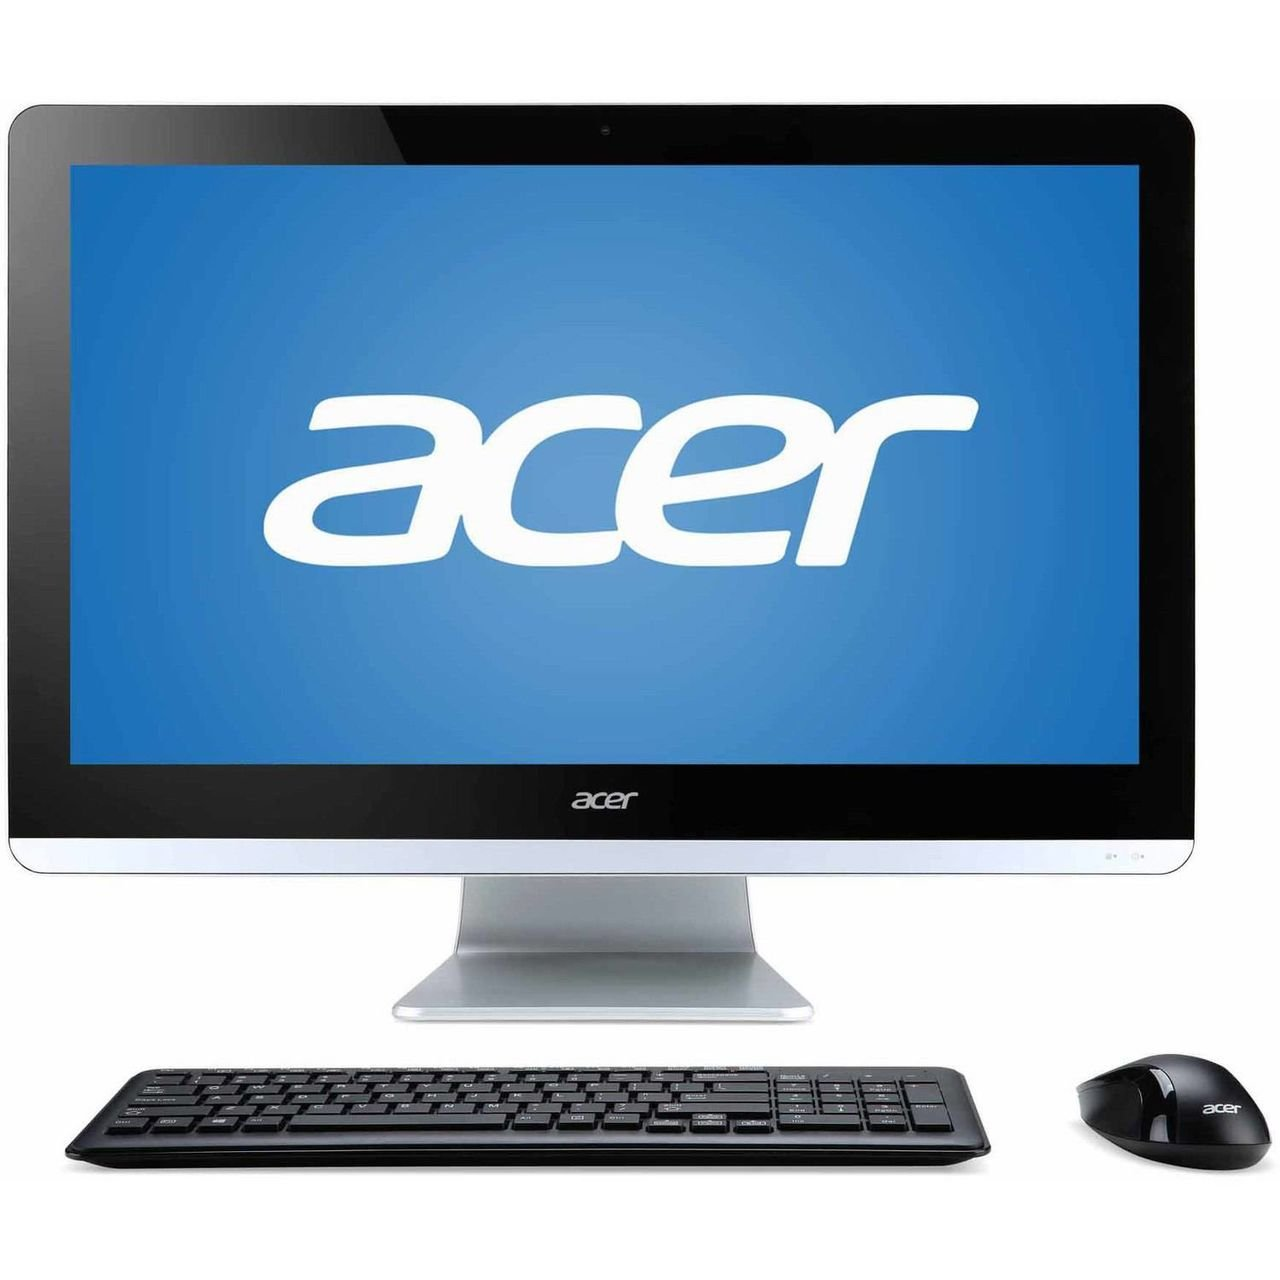 Acer Aspize Z All-in-One Desktop PC 19.5 Full HD, Windows 10 Home, 500GB HDD, 4GB RAM, Bluetooth